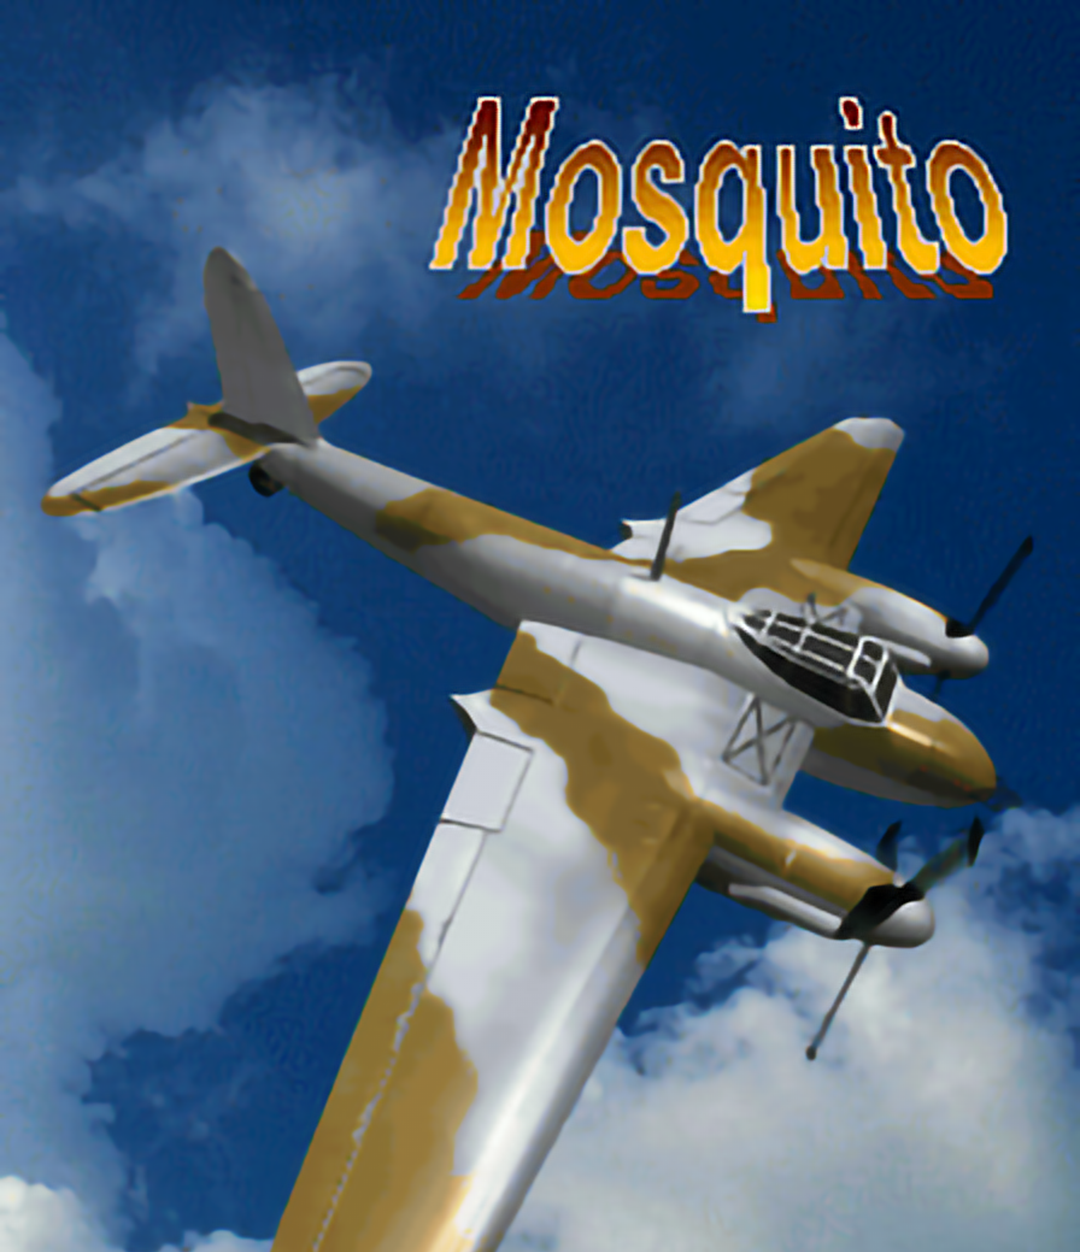 File:DH-98 Mosquito.png